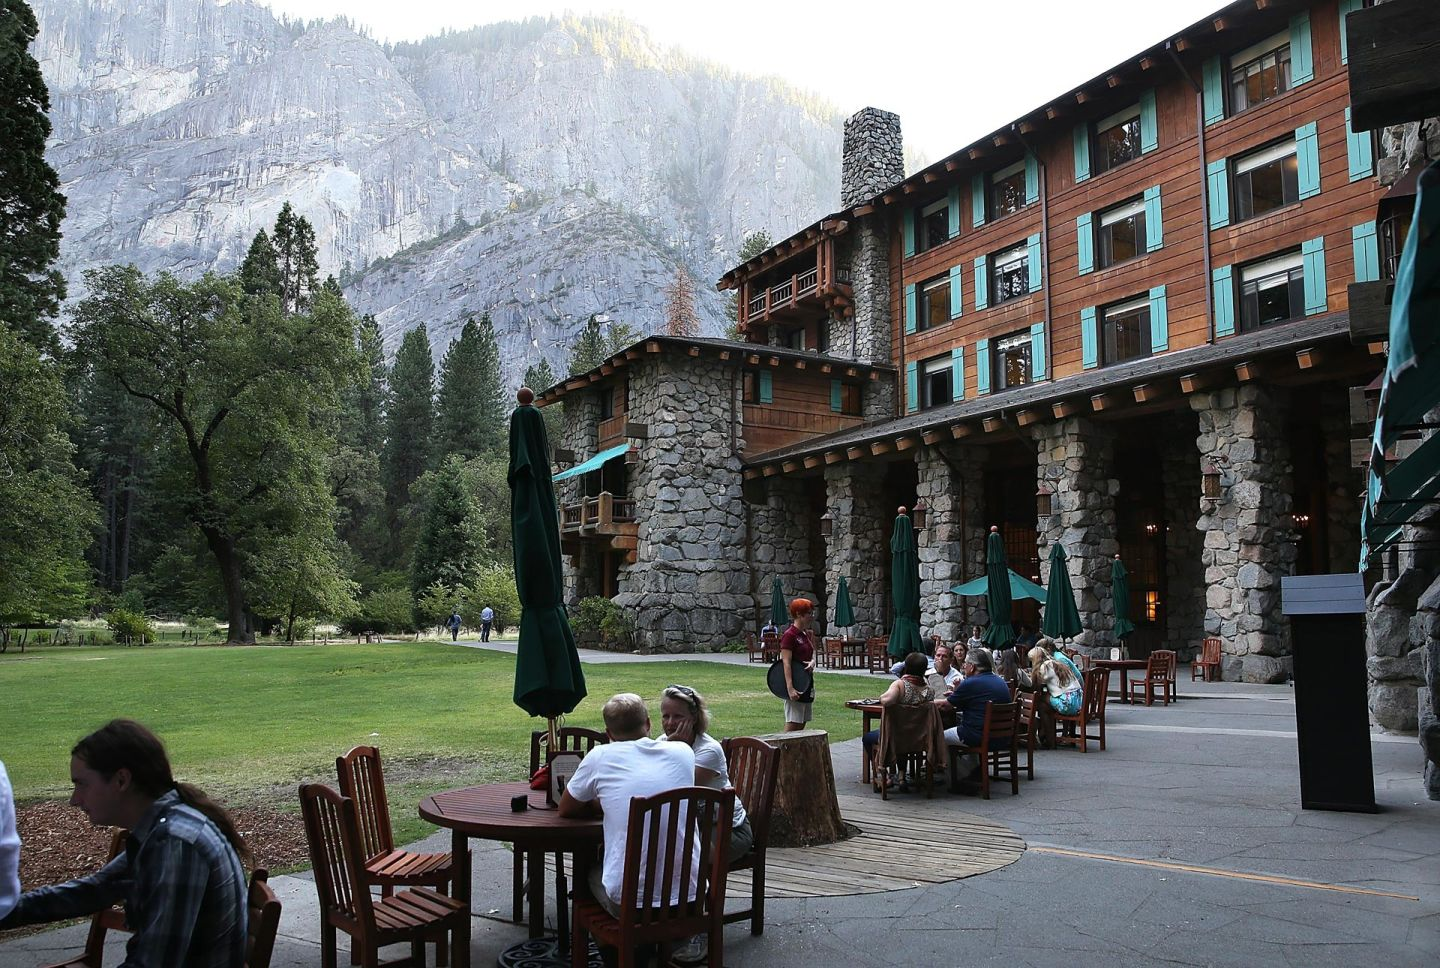 Park visitors sit outside the historic Ahwahnee Hotel, now to be called the Majestic Yosemite Hotel.